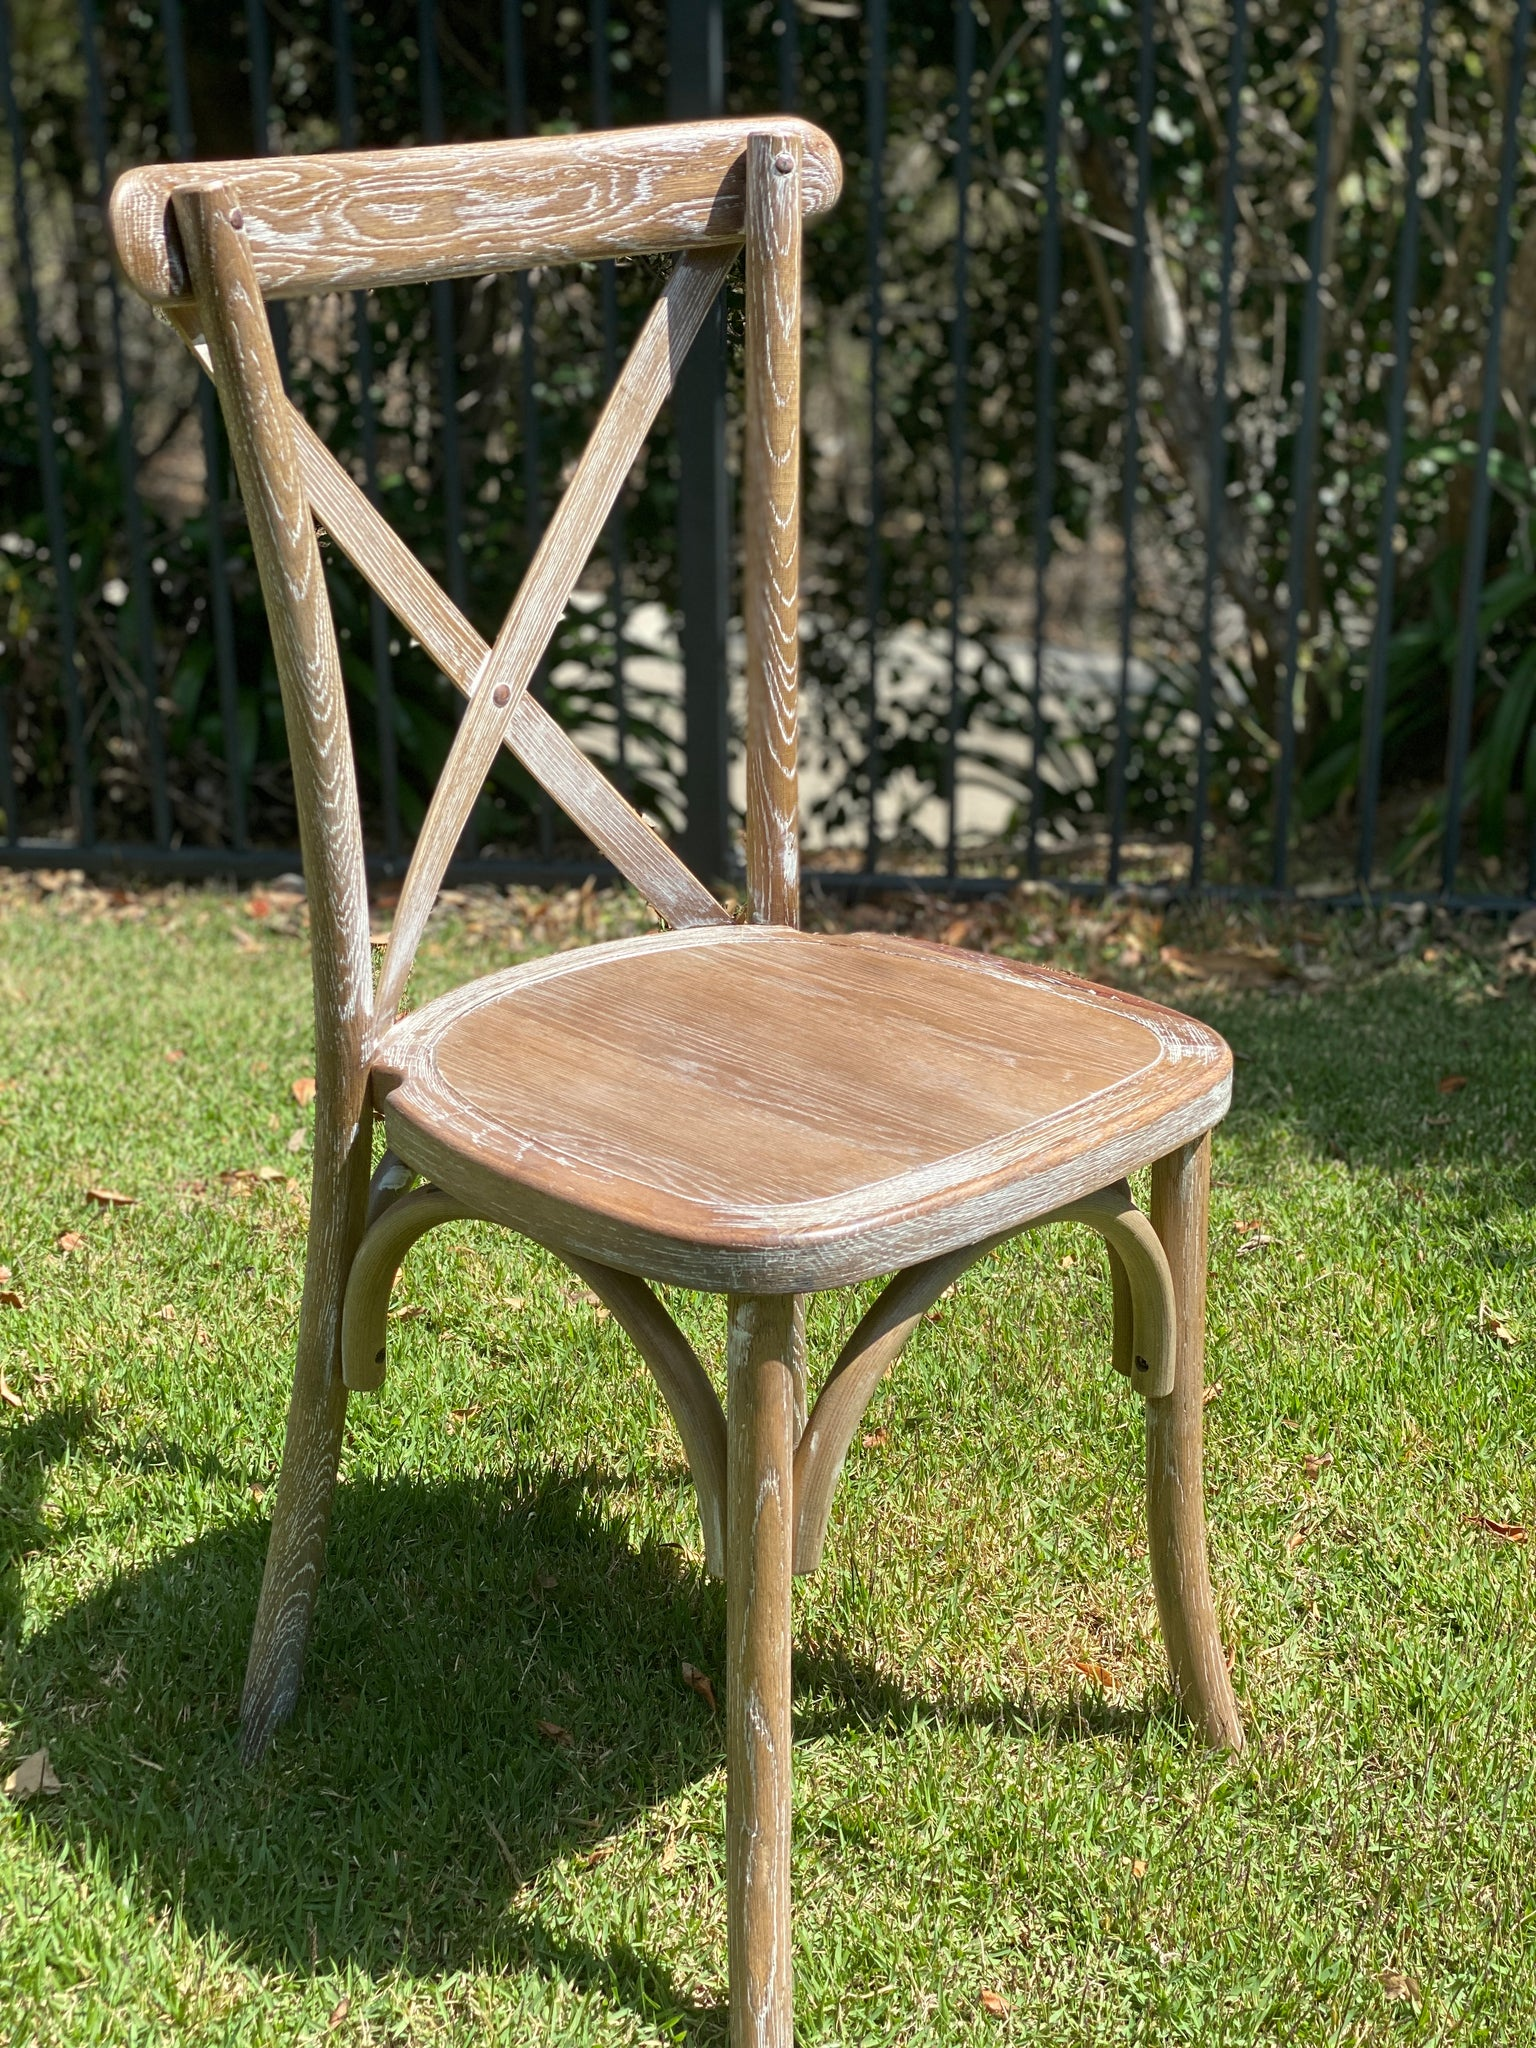 Bentwood Cross back Chair - White Wash Antique Style with Plain Seat 6 chairs @ $99each